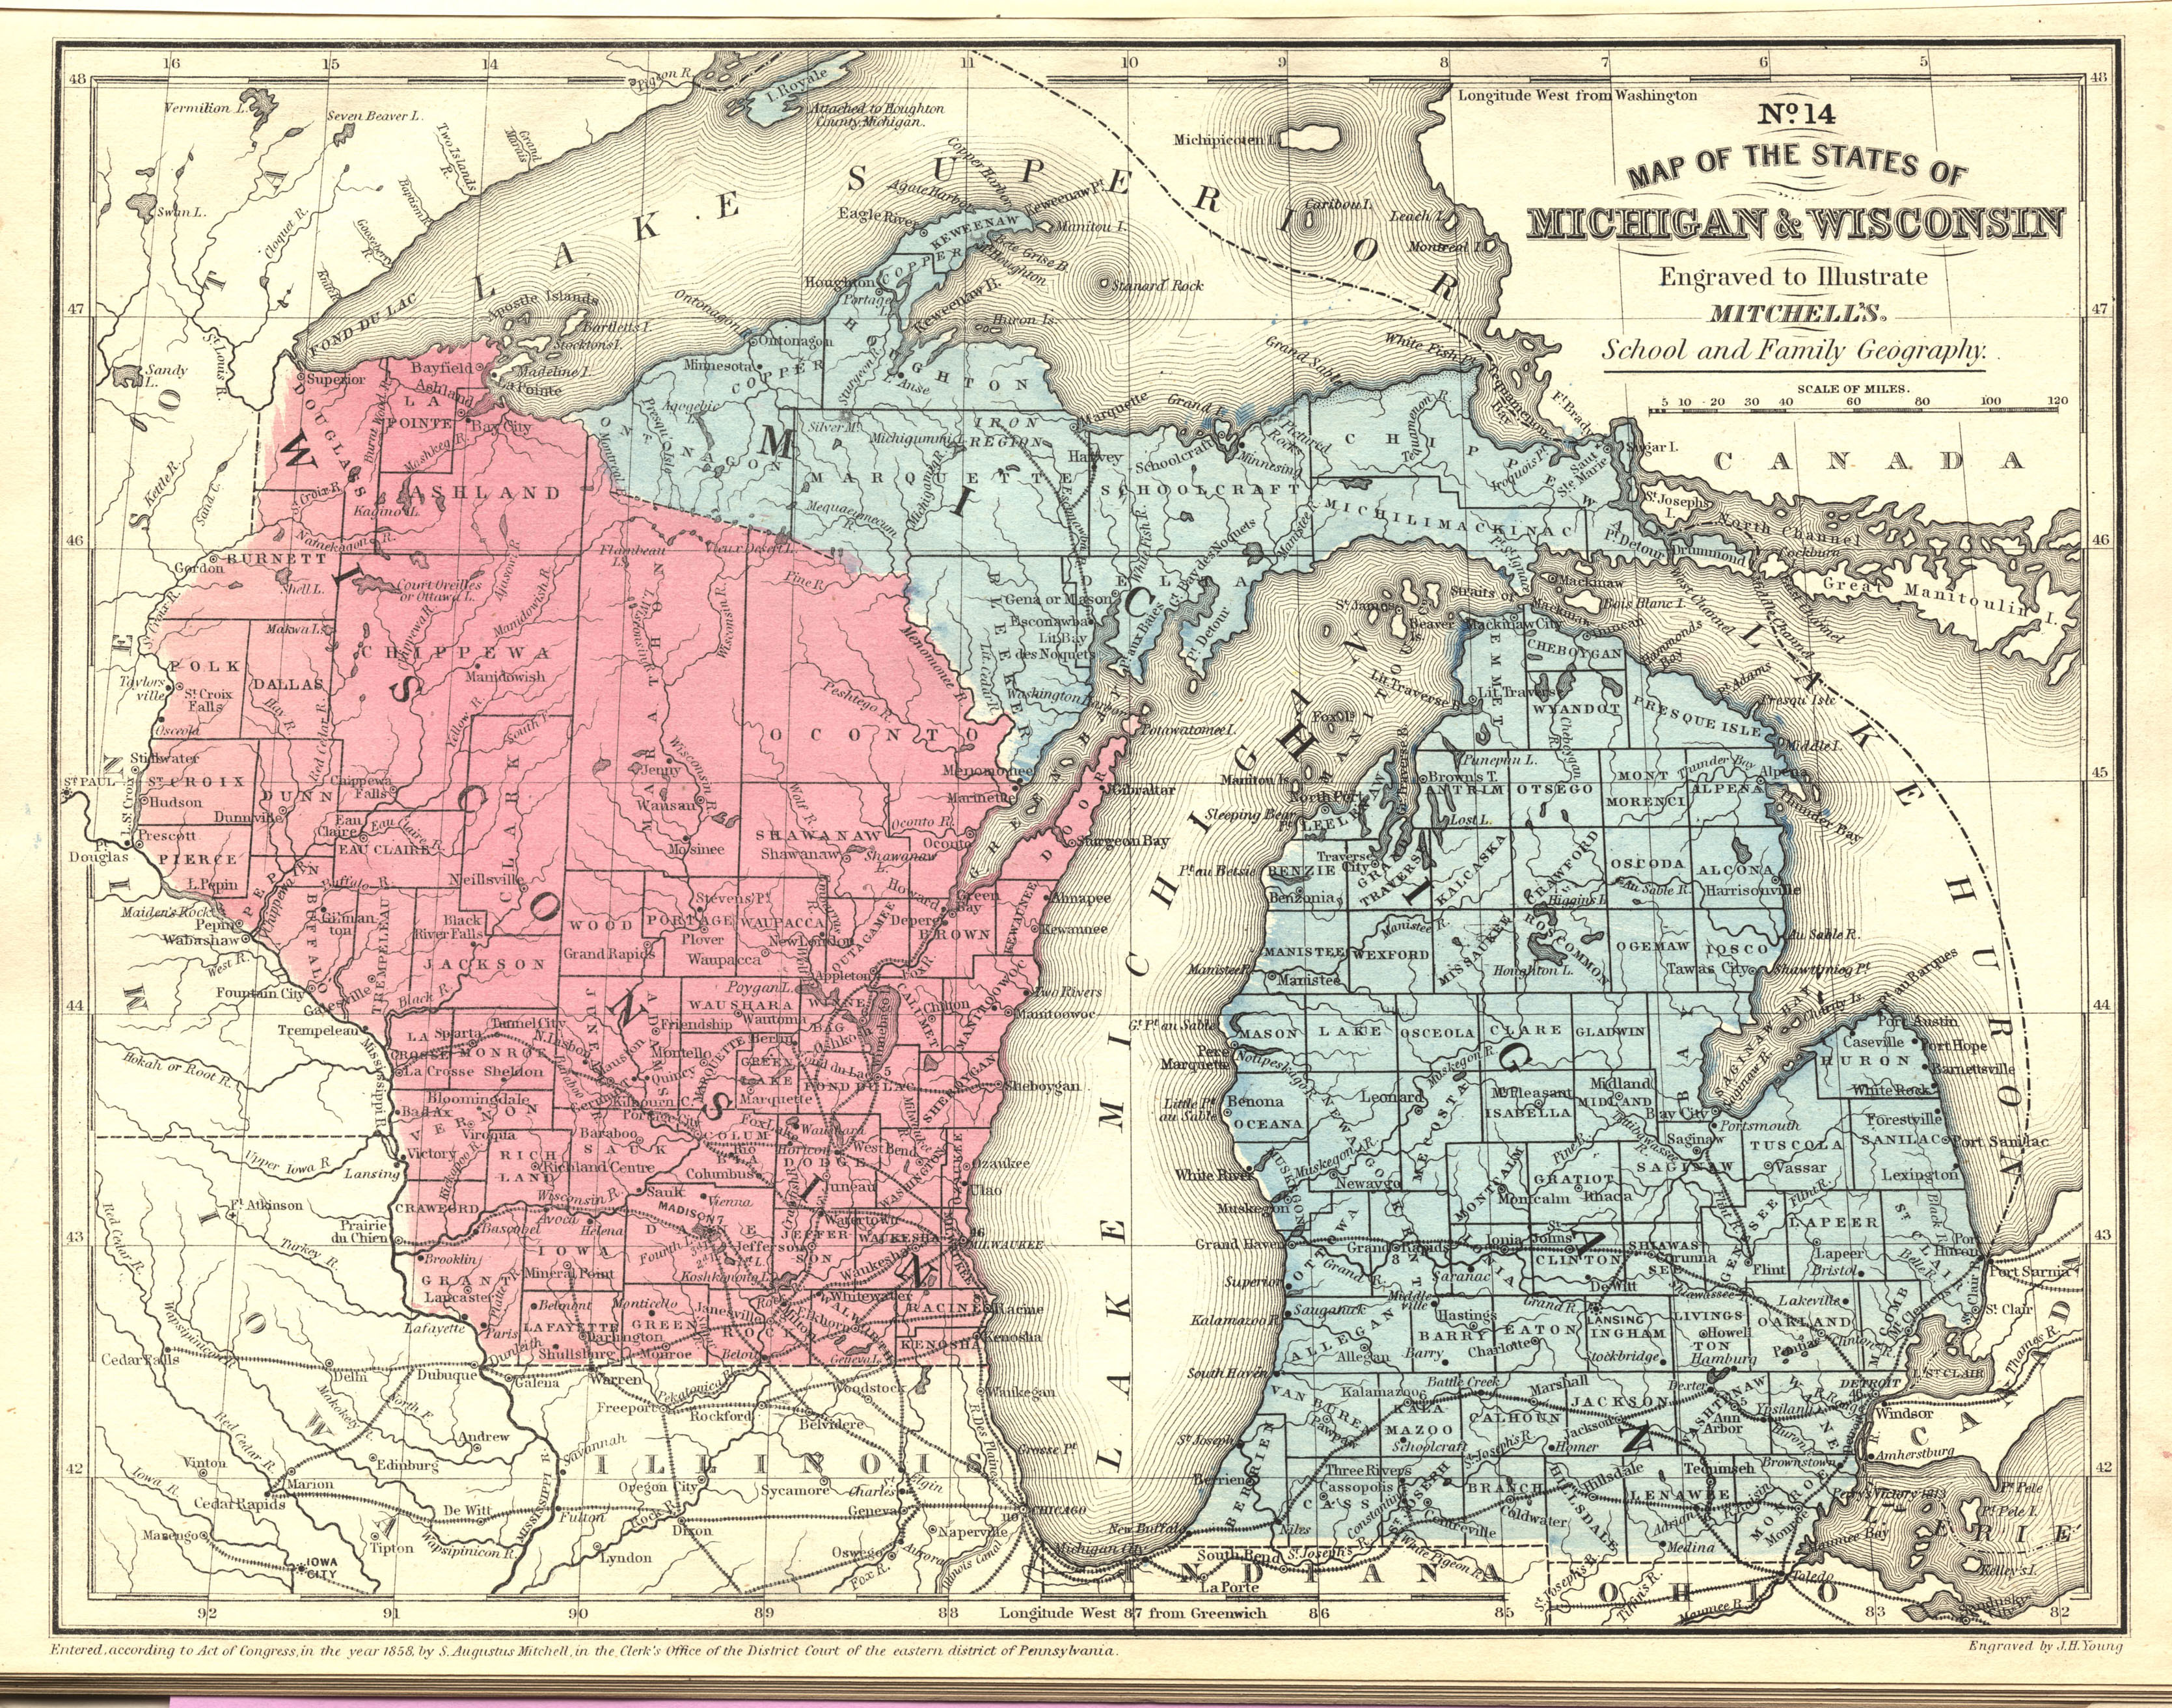 County Map Of Michigan And Wisconsin Mitchell Samuel